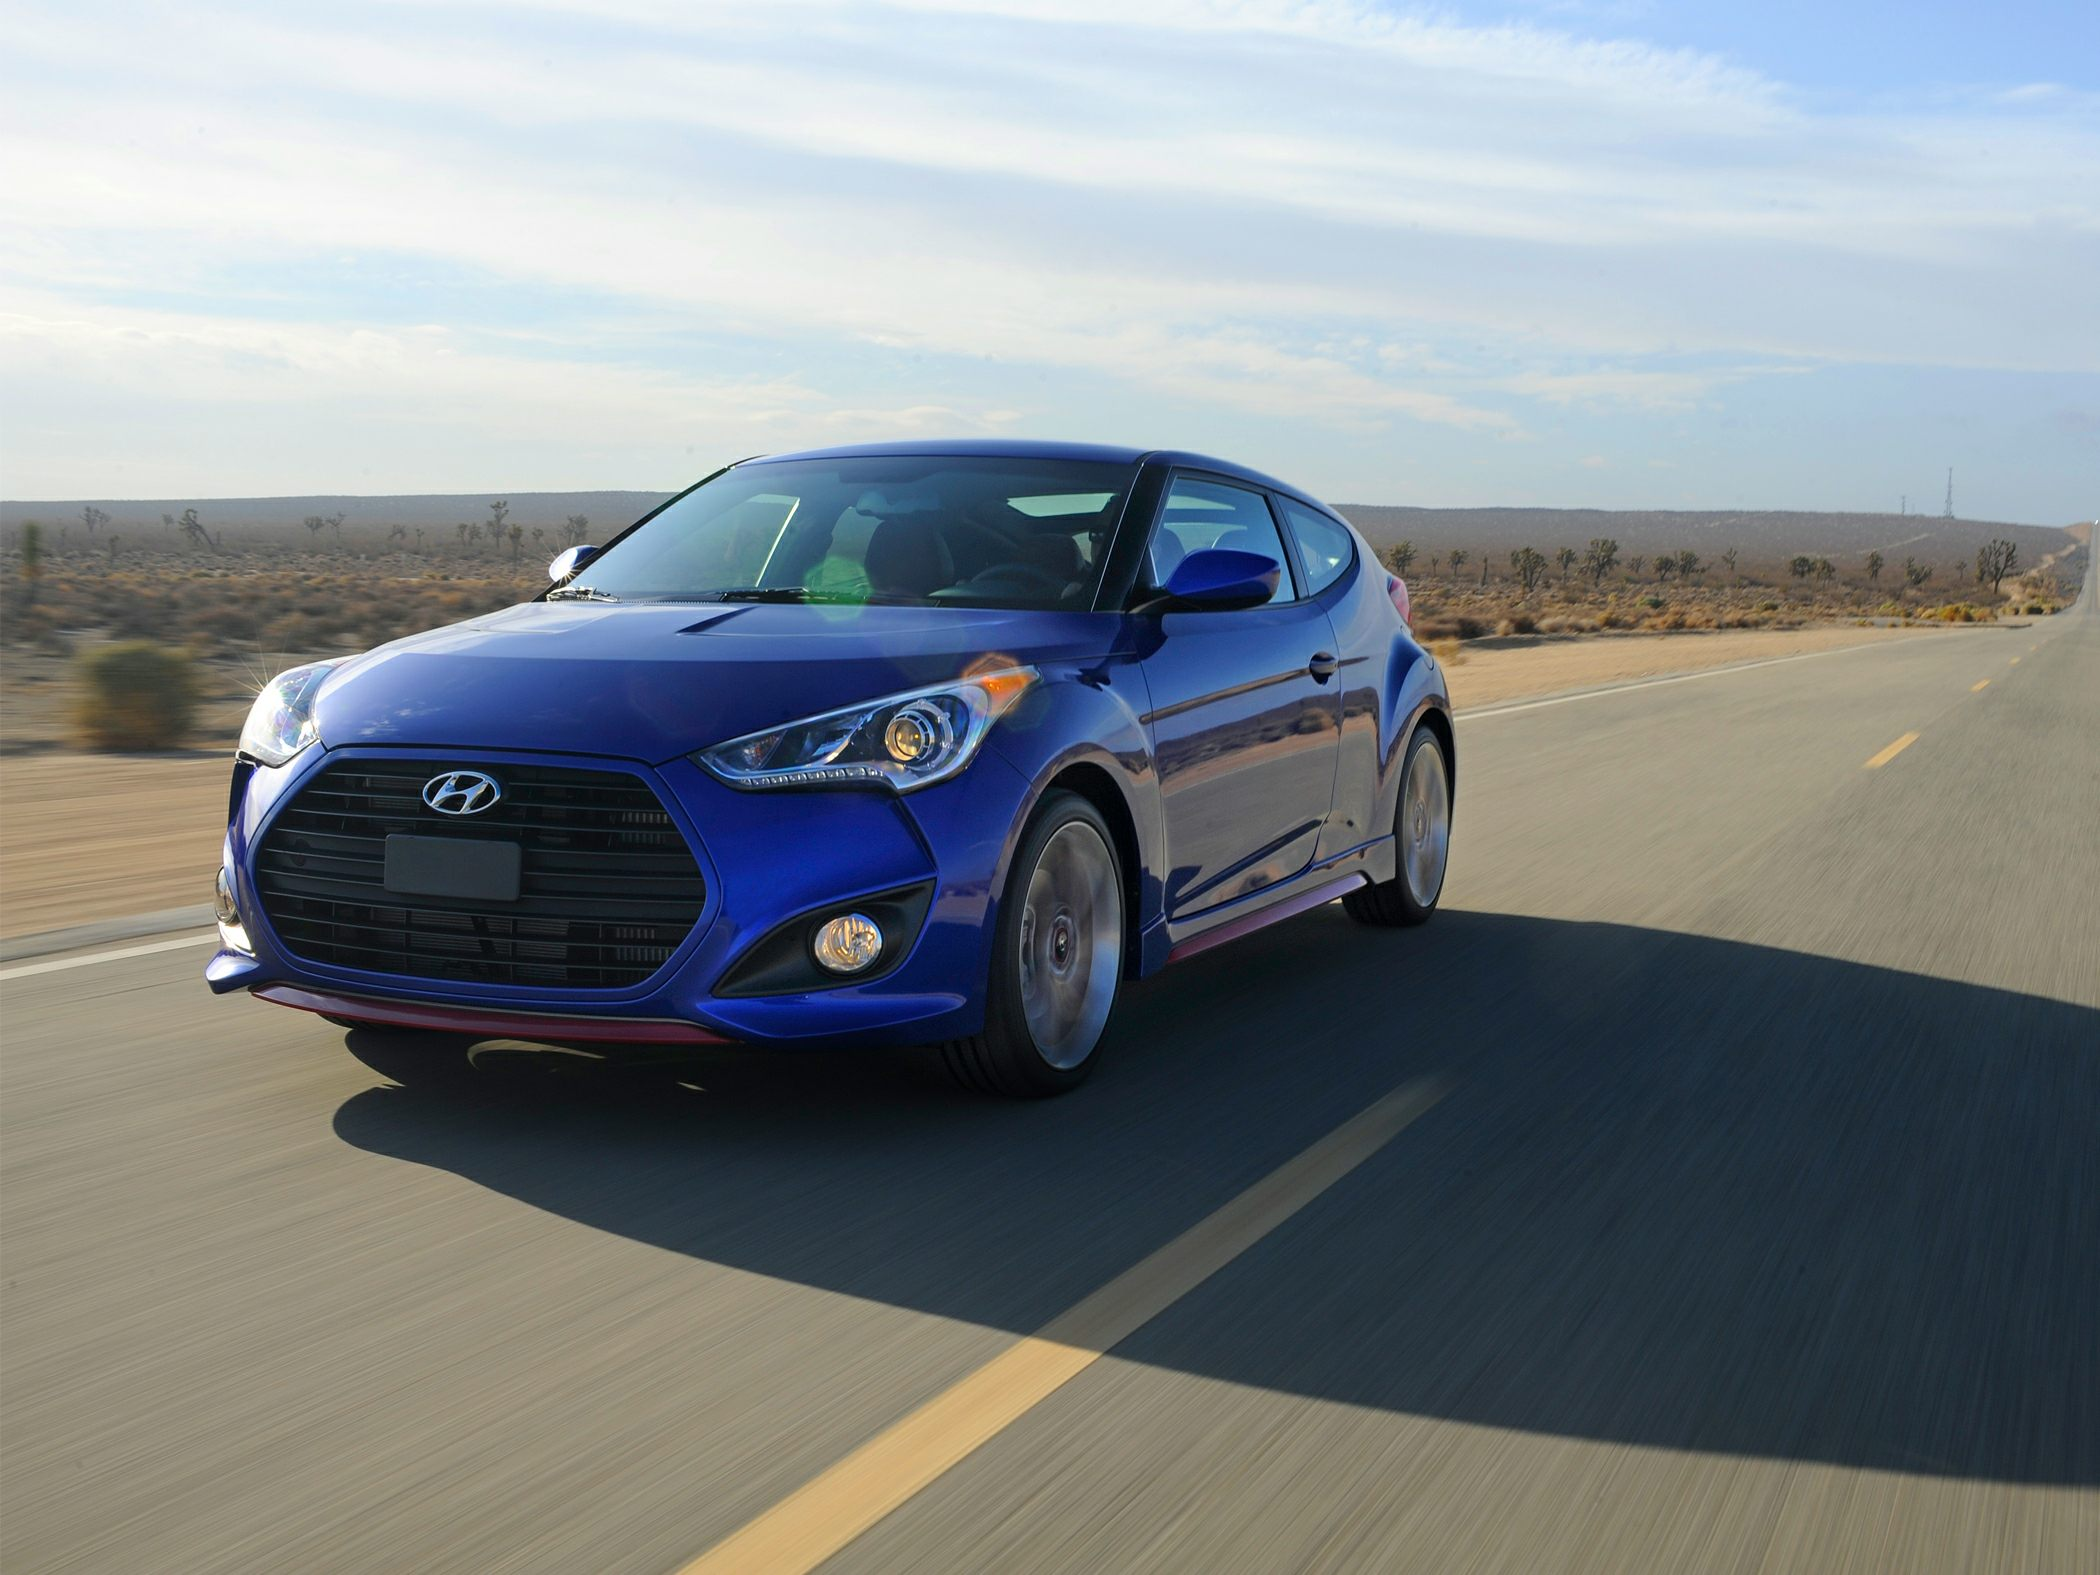 less chunky reviews spied car edition turbo driver funky rally spec hyundai veloster review news still test s r original and photo